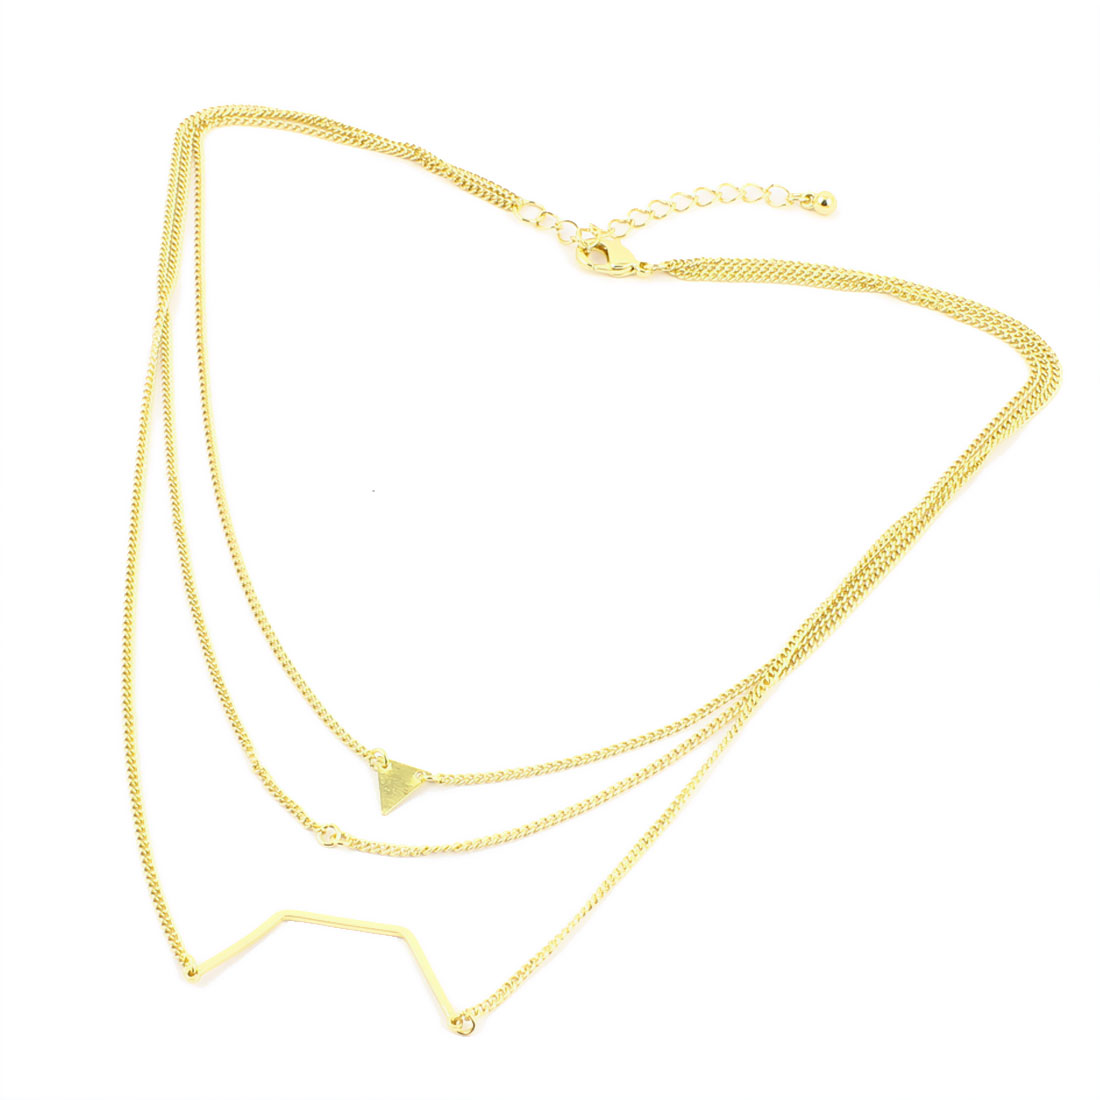 2pcs Gold Tone Metal Lightweight Lobster Buckle Strip Link Slim Chain Necklaces Neckwear Collar for Ladies Women